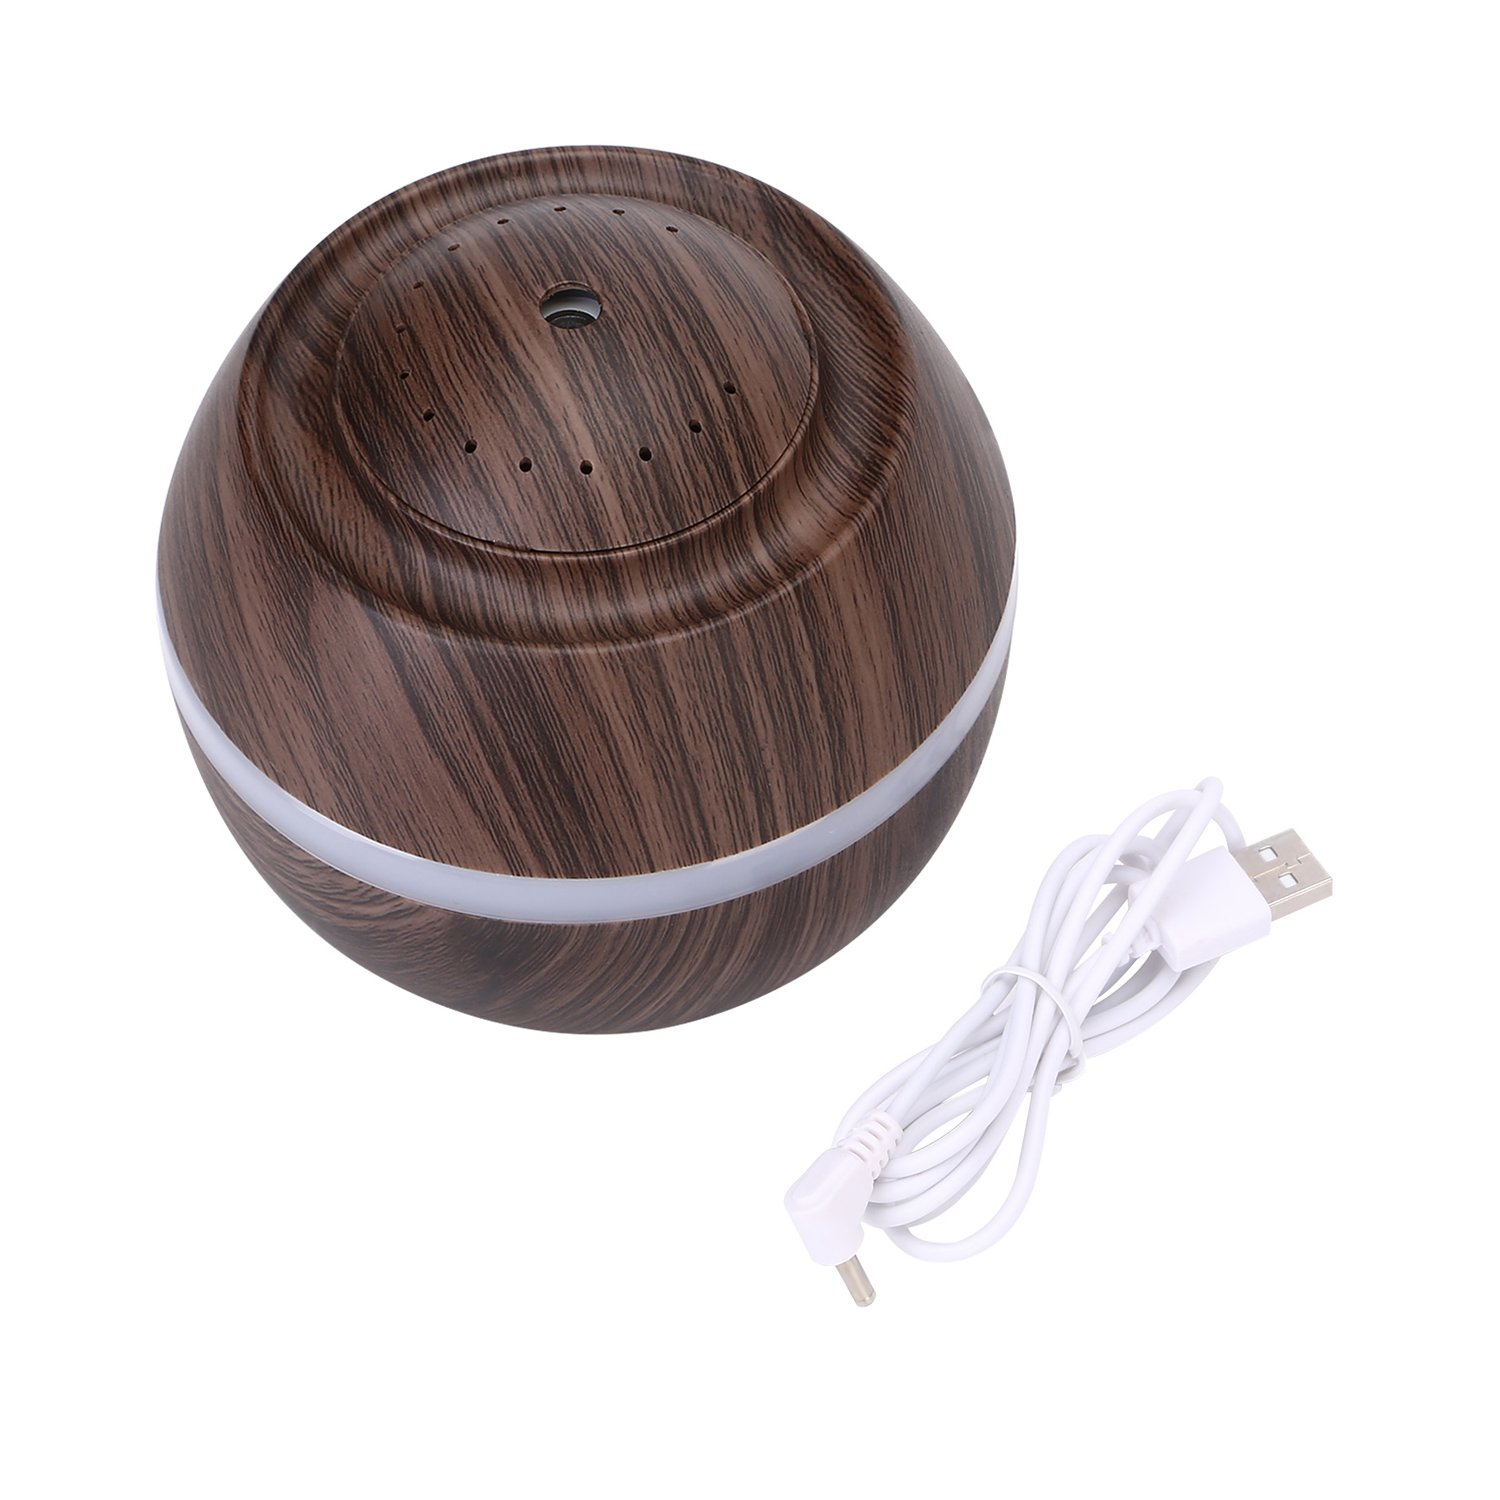 Cool Mist Humidifier Ultrasonic Aroma Essential Oil Diffuser for Office Home Bedroom Living Room Study Yoga Spa - Wood Grain (Brown)